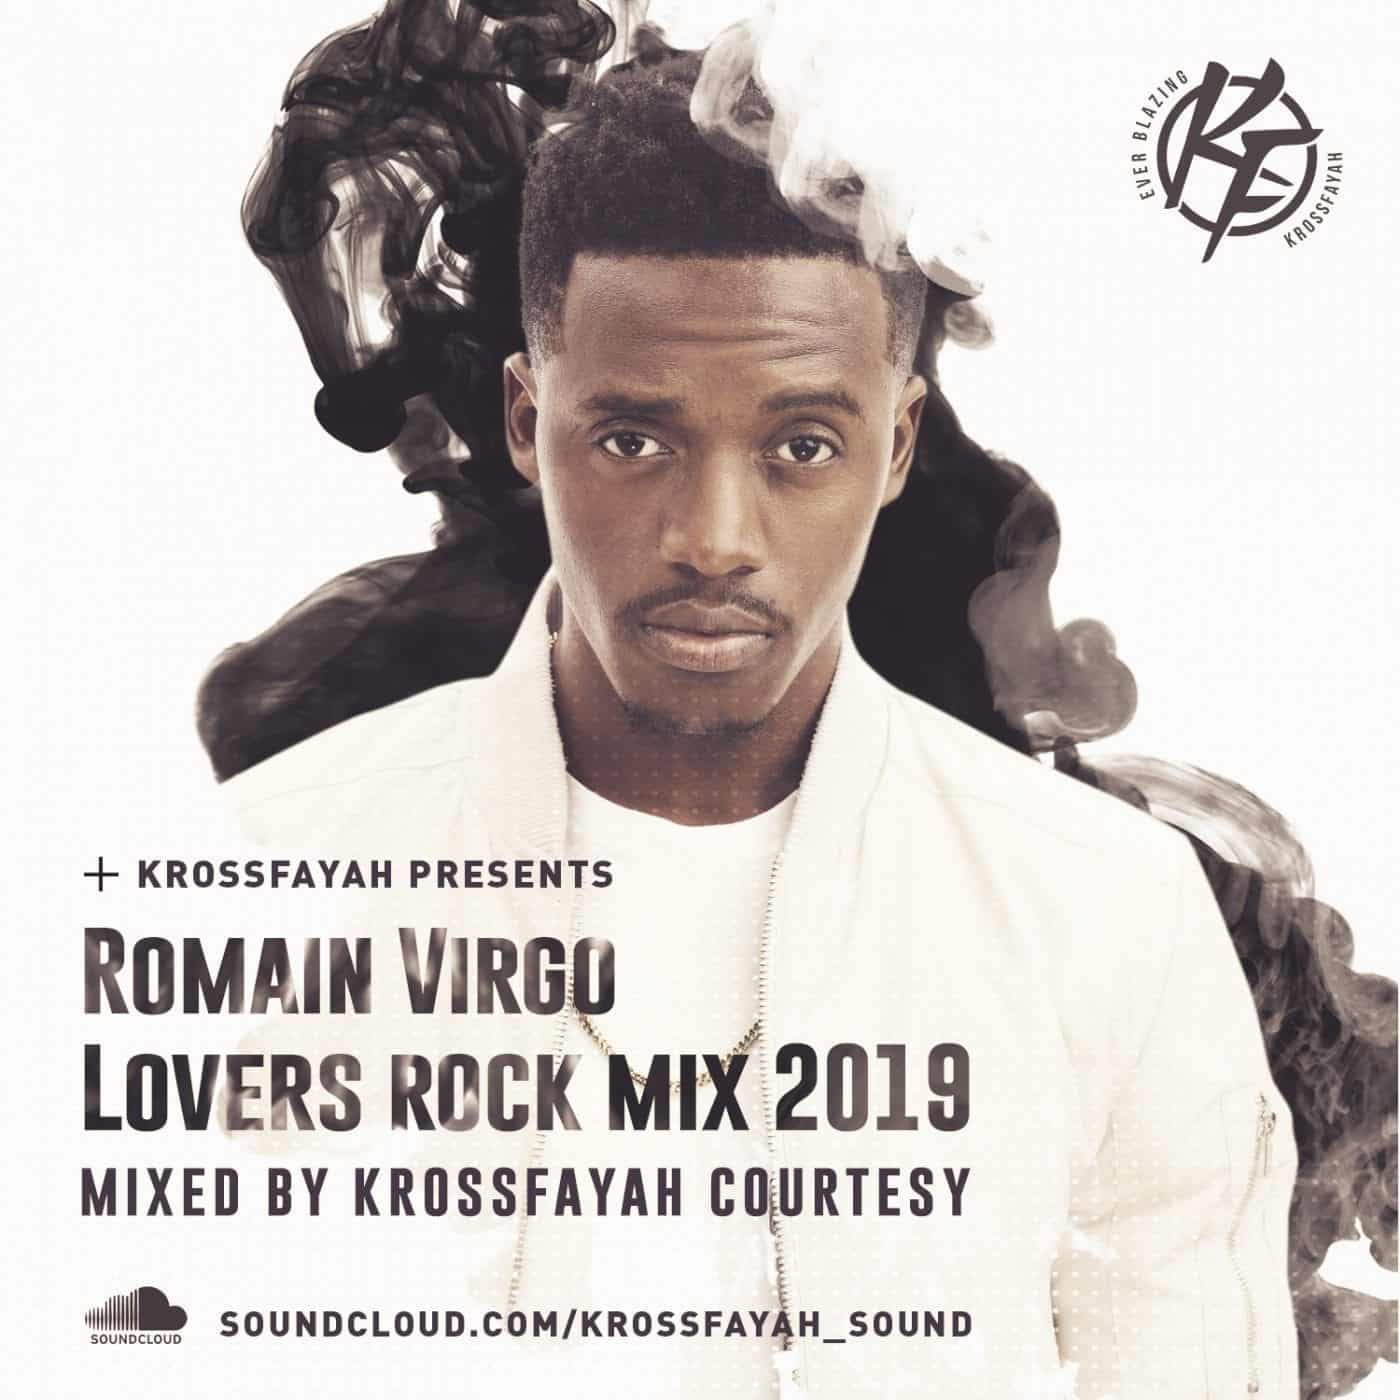 KrossFayah Sound Presents - Romain Virgo - Lovers Rock Mix - 2019